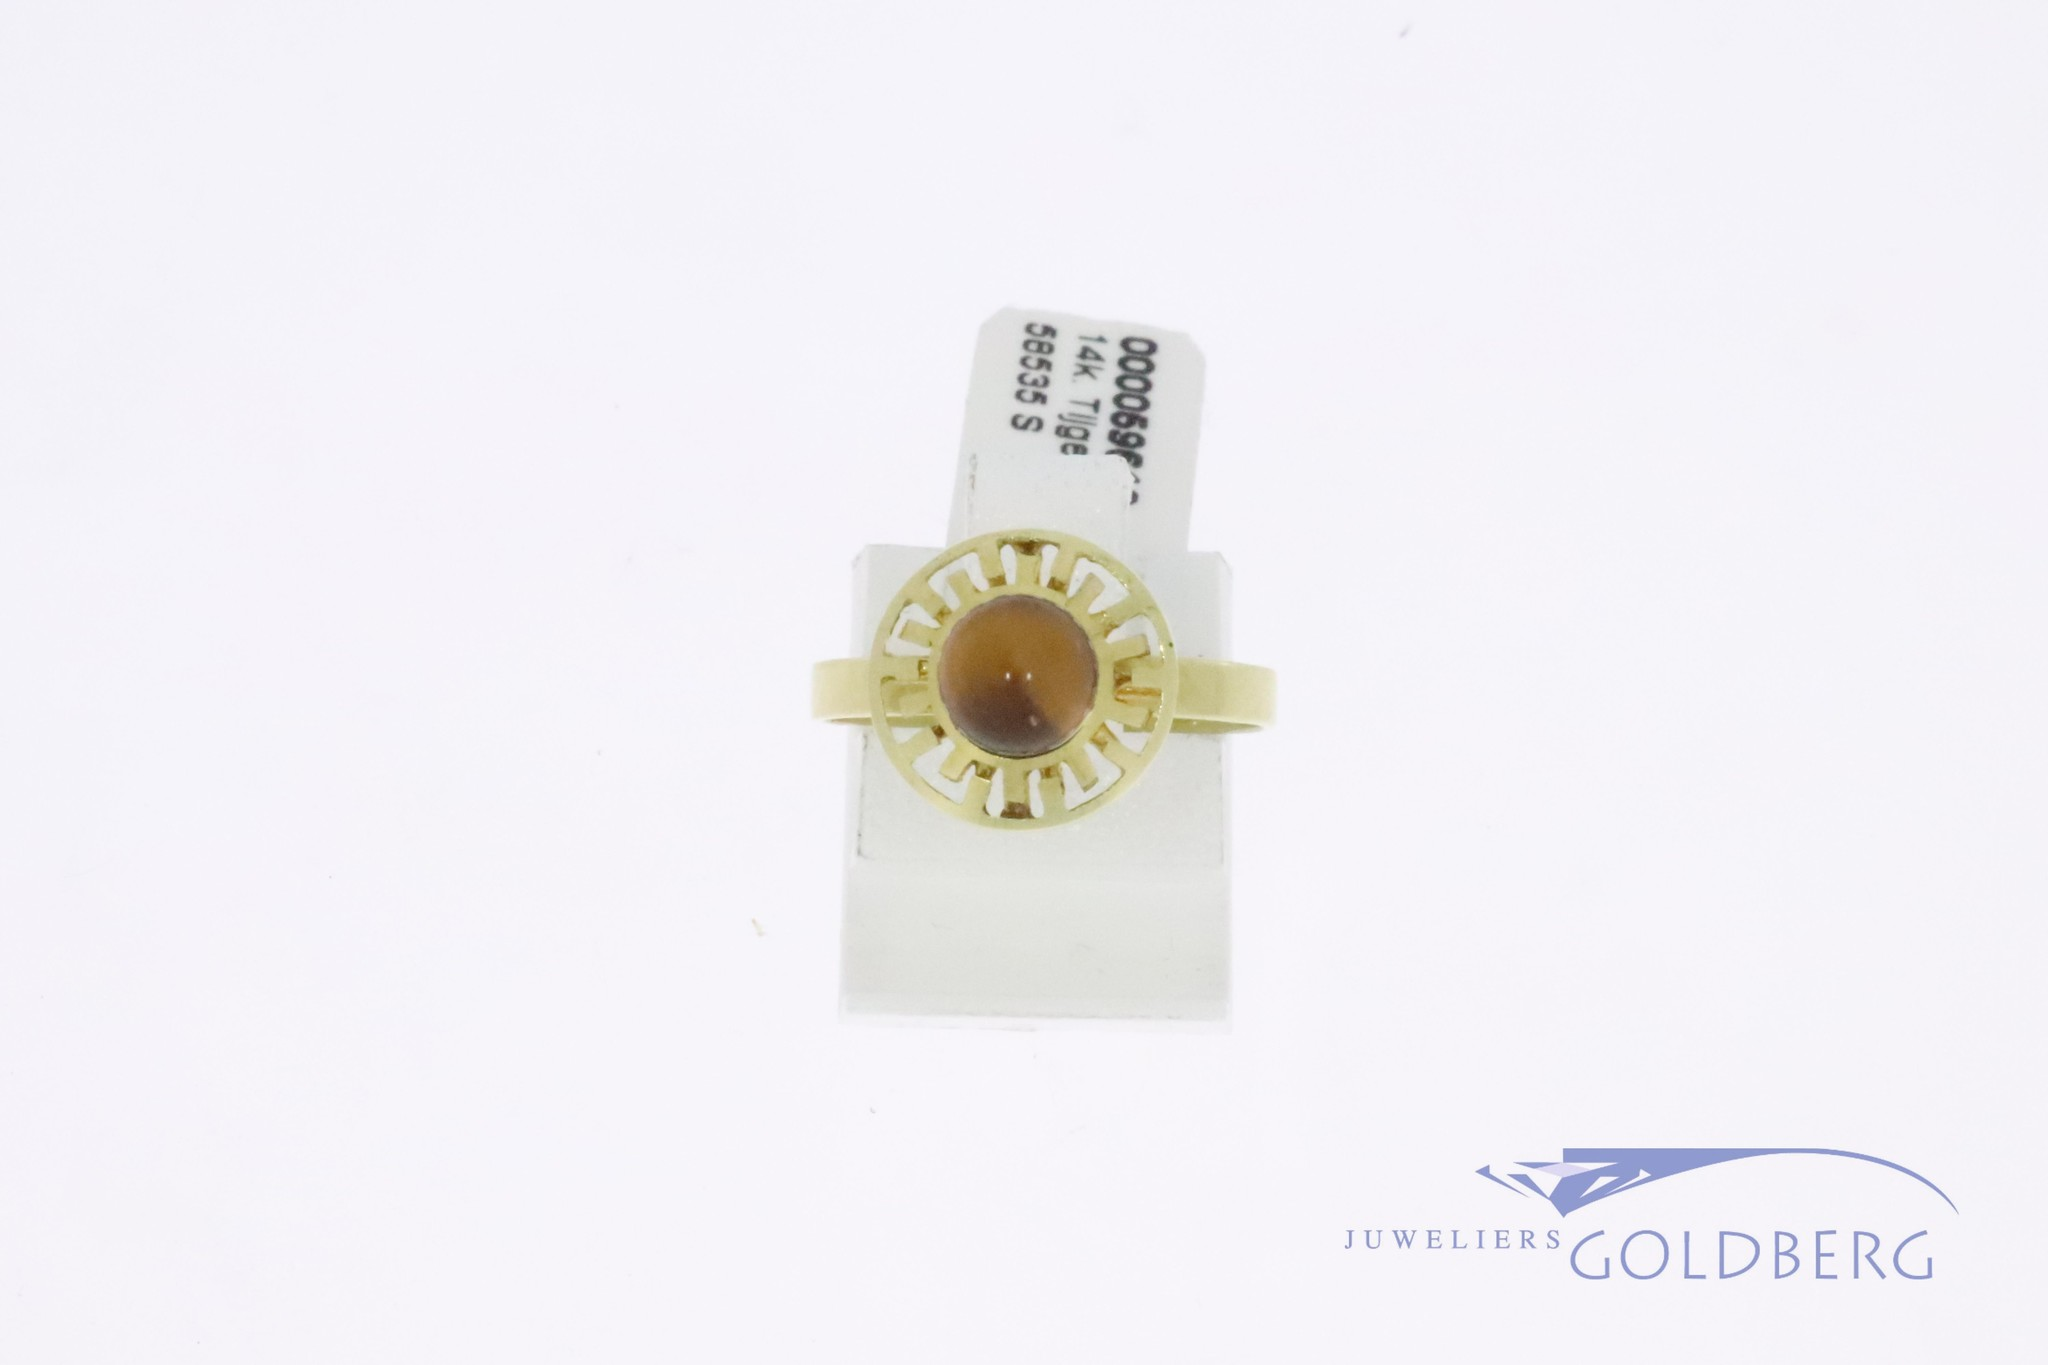 Cute 14k gold ring with tiger's eye gemstone